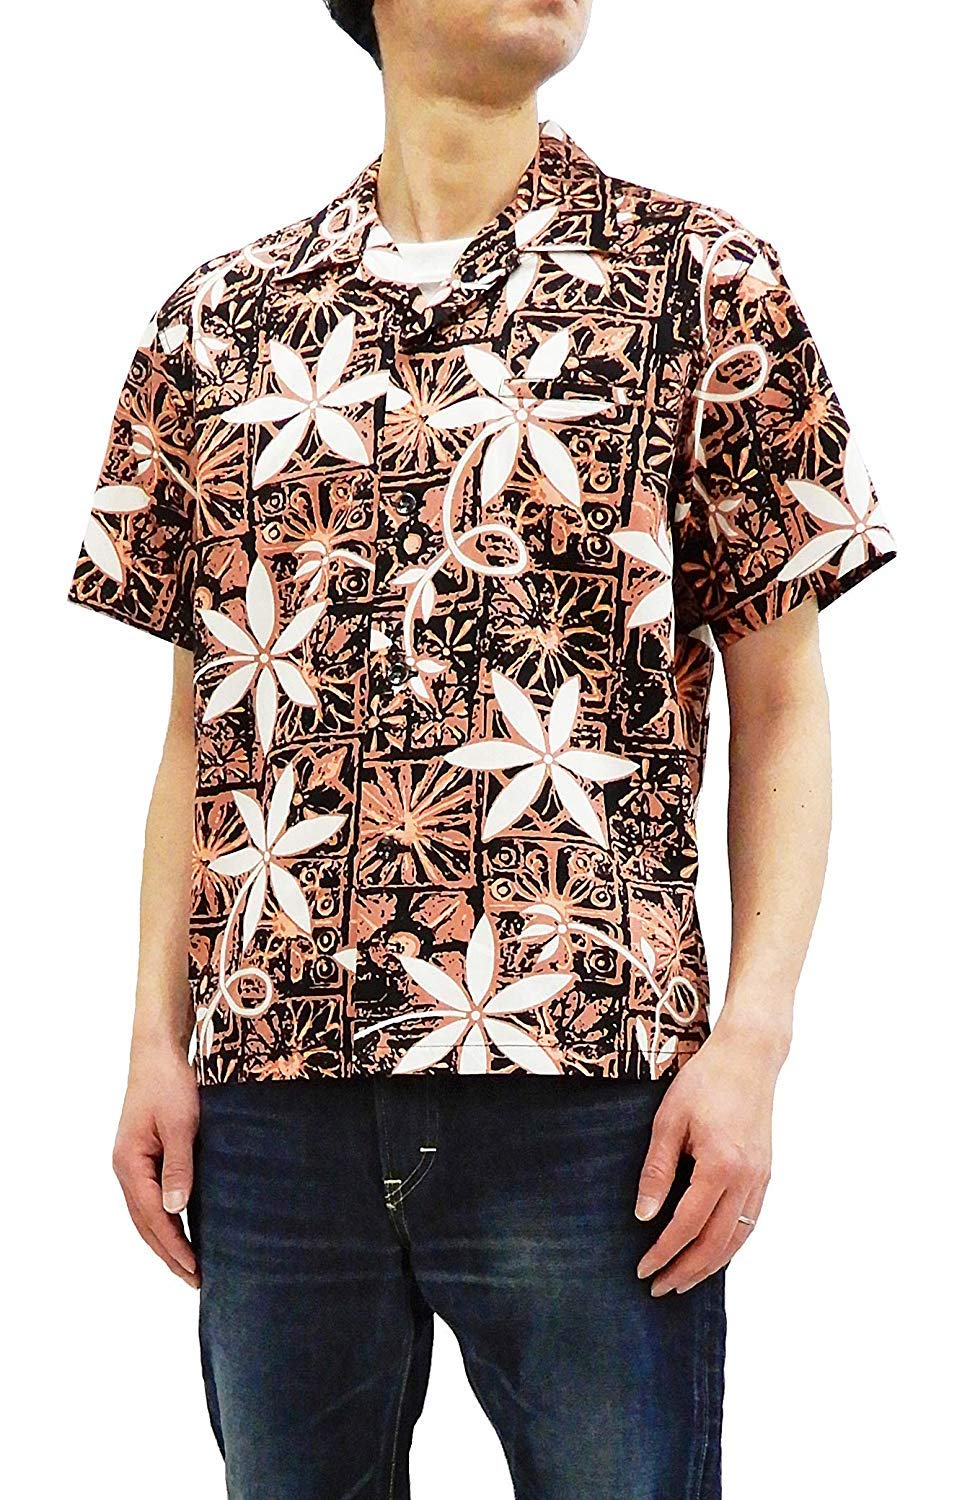 Star of Hollywood Men's Short Sleeve Shirt Elvis Presley Blue Hawaii SH38118 Black Tagged Japan XL (US L-XL) by Star of Hollywood (Image #1)